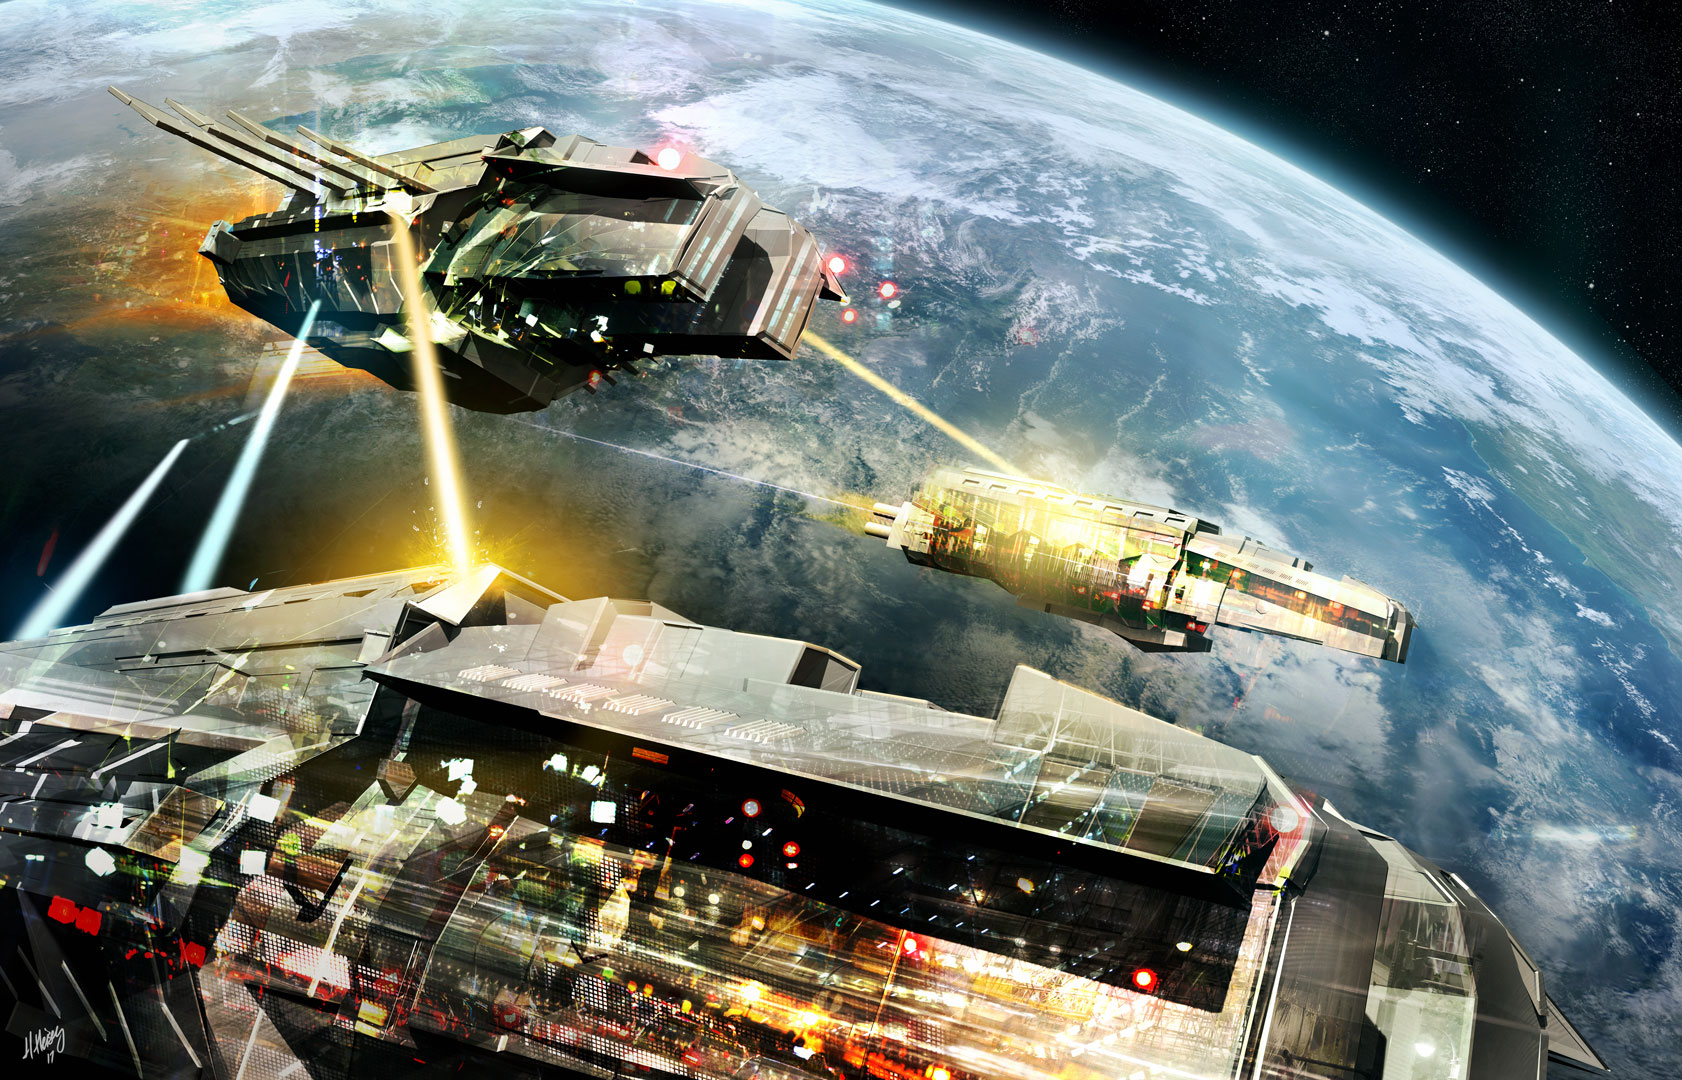 Space Battle! (I have used this in numerous banners for social media accounts—but never on a book or album cover!)